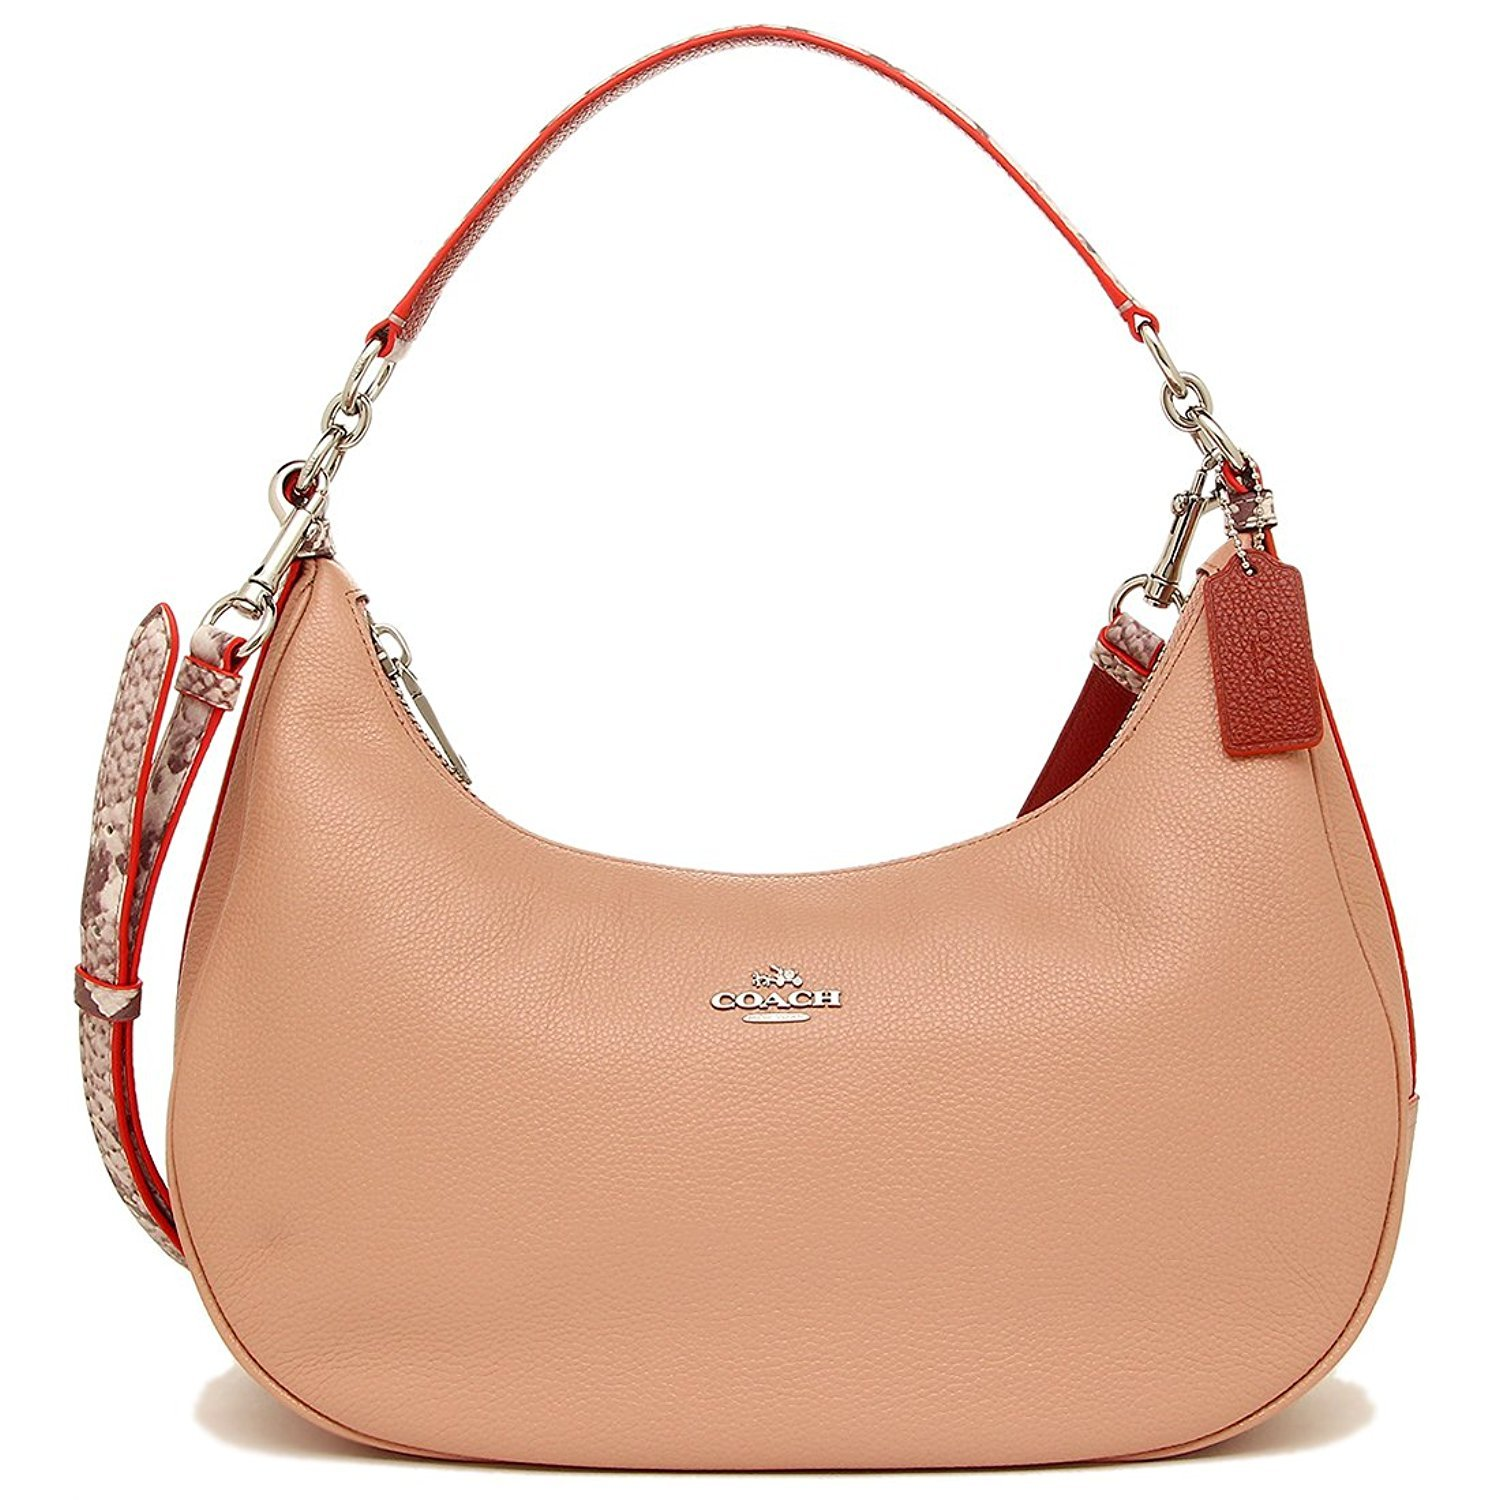 COACH EAST/WEST HARLEY HOBO IN POLISHED PEBBLE LEATHER WITH PYTHON EMBOSSED LEATHER TRIM SILVER/NUDE PINK MULTI F11752